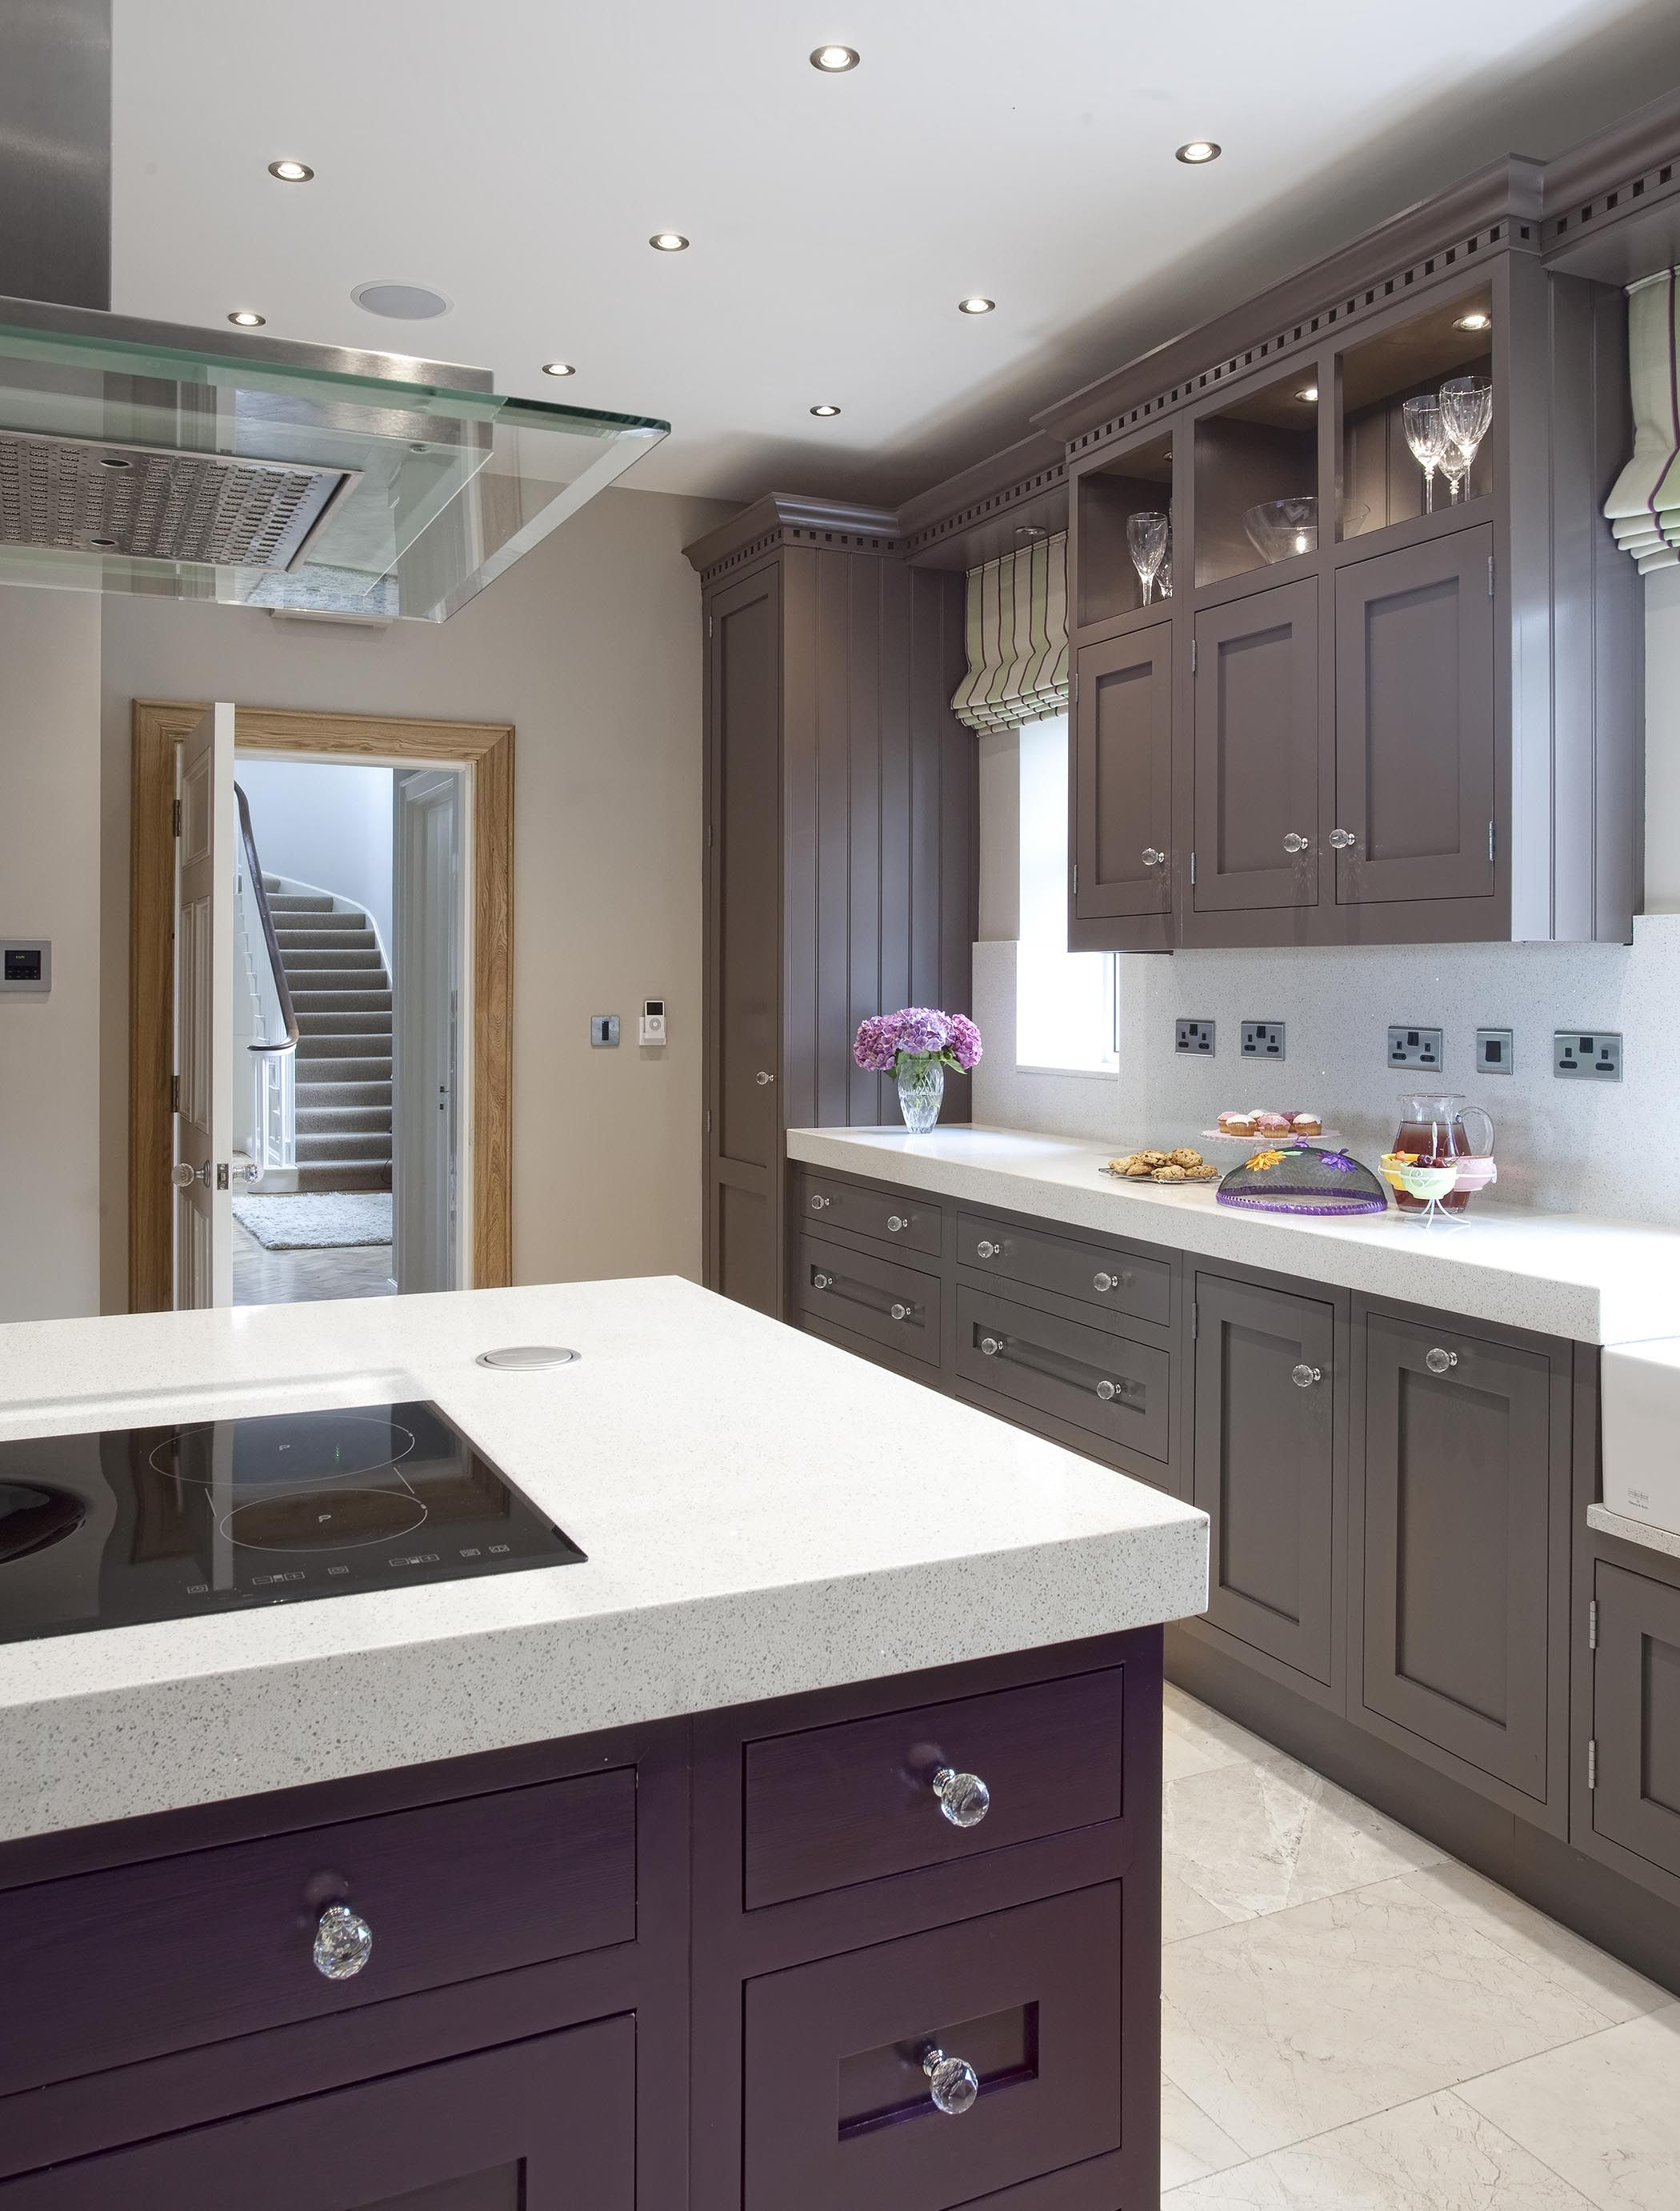 Kitchen Ideas London detailed picture of f&b 'london clay' + damson painted kitchen